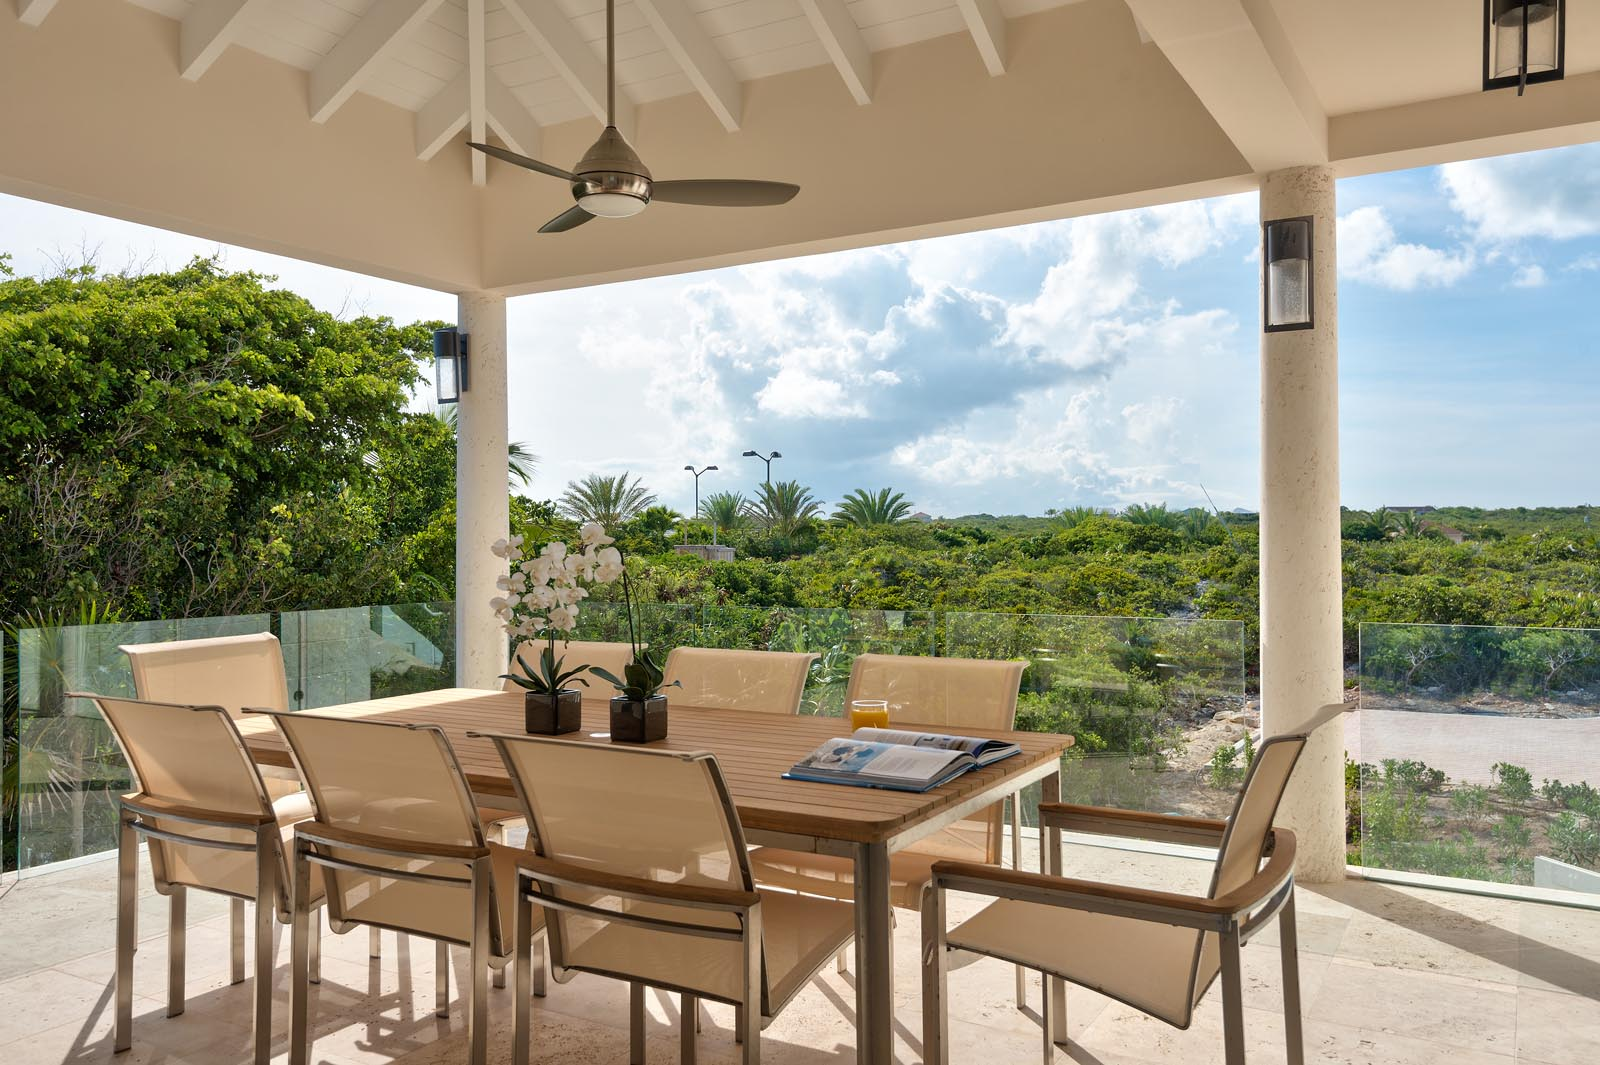 The outdoor dining area of Villa Isla, Long Bay Beach, Providenciales (Provo), Turks and Caicos Islands